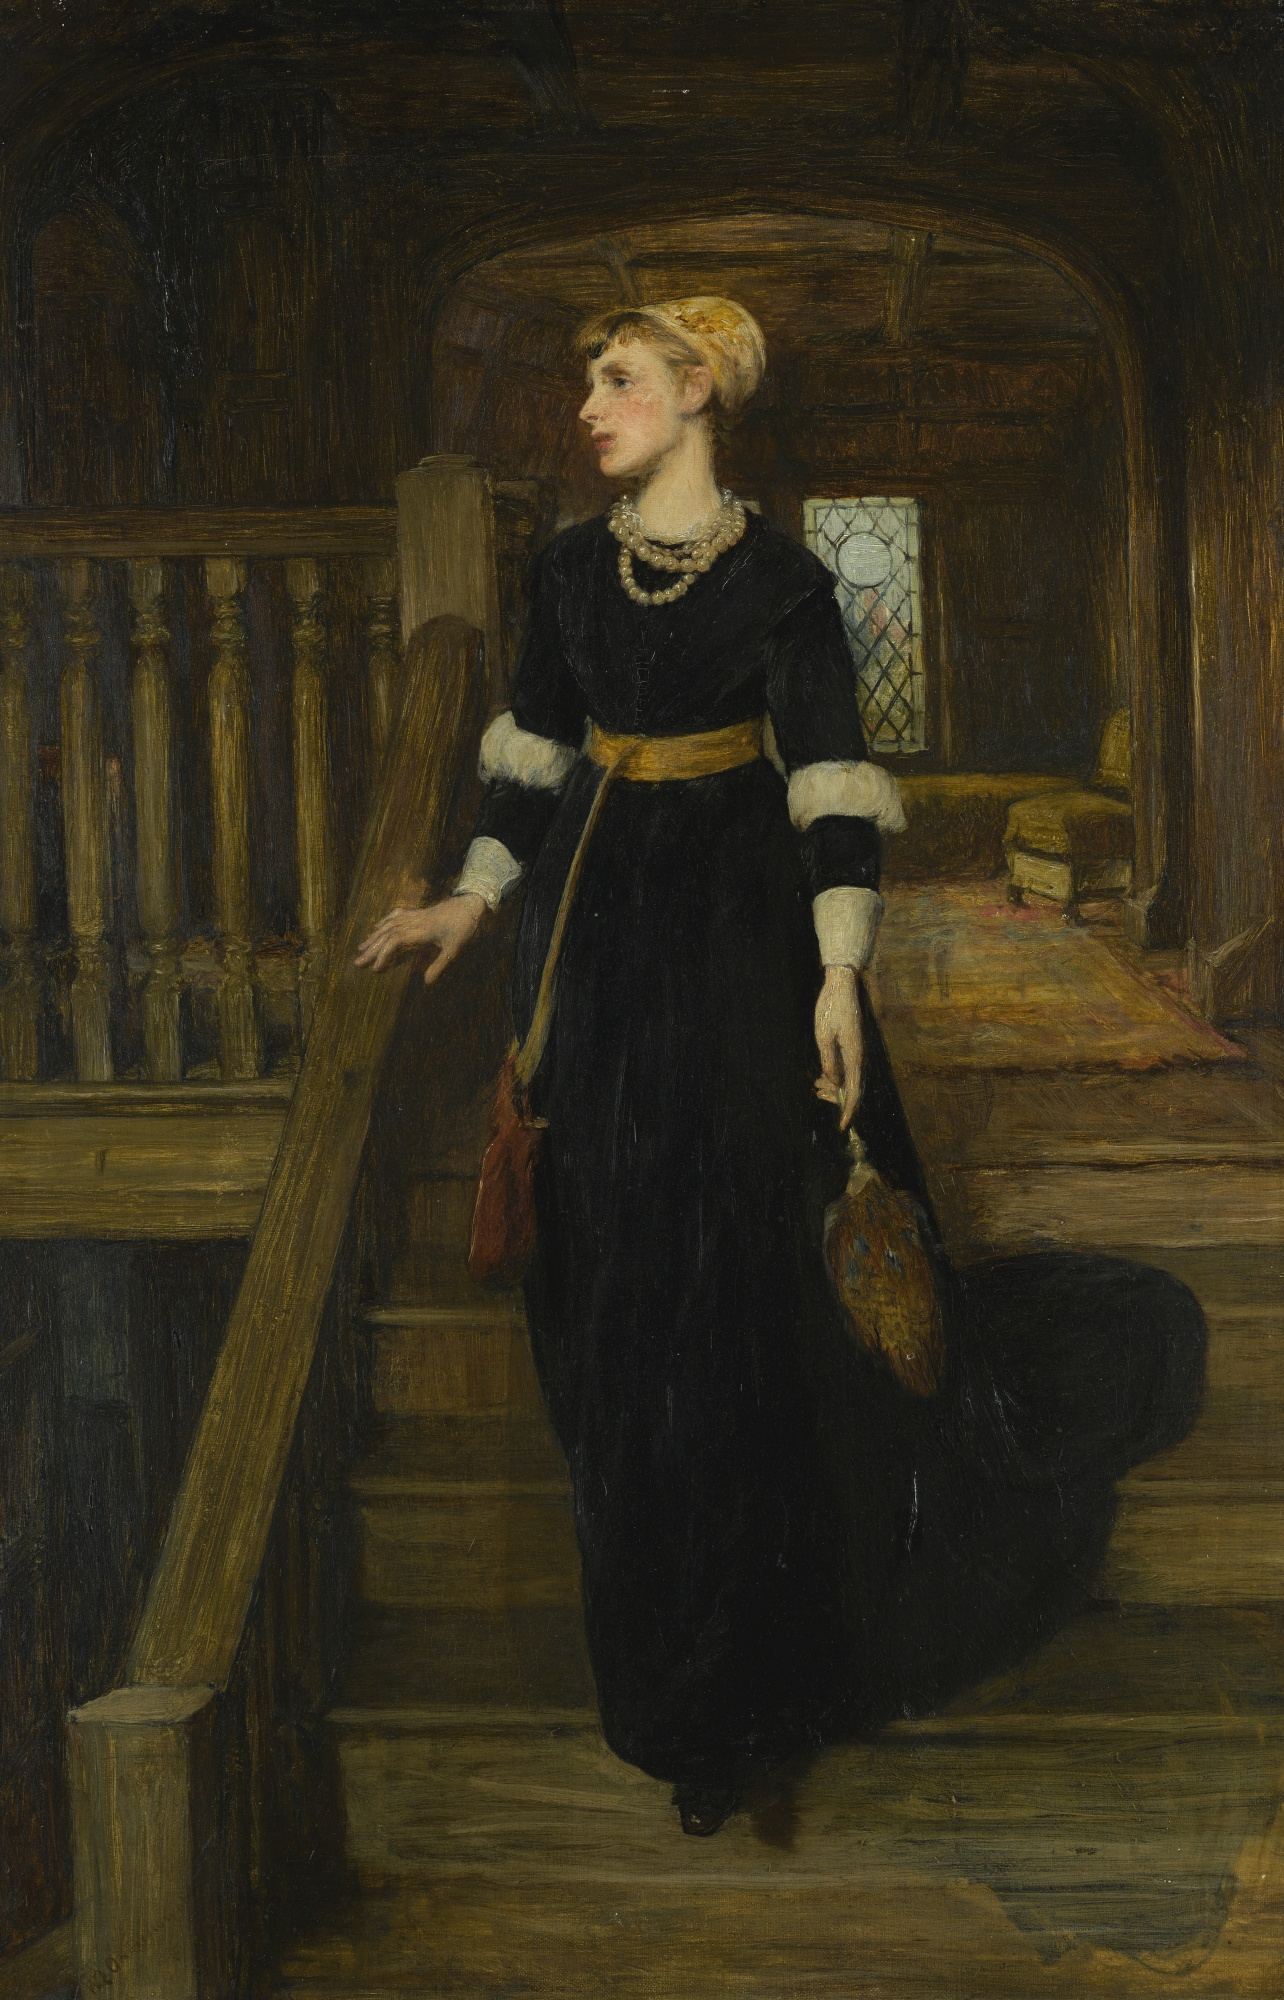 SIR WILLIAM QUILLER ORCHARDSON, R.A., H.R.S.A.- AMY ROBSART